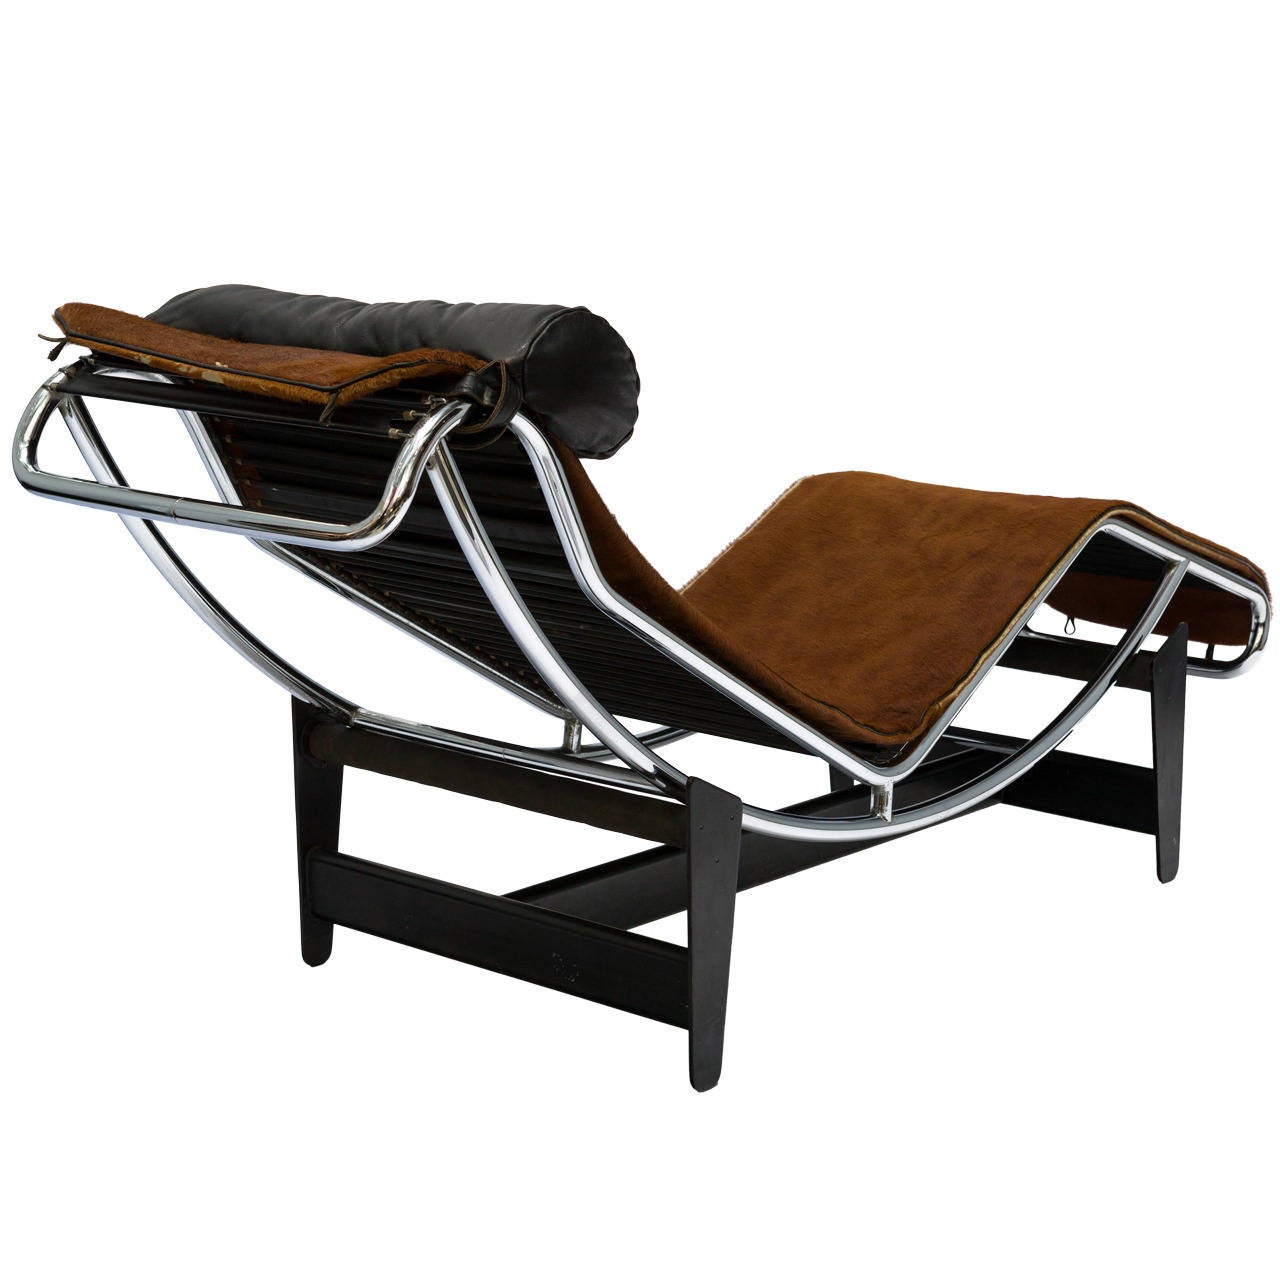 Le corbusier lc4 chaise lounge chair in cowhide for sale for Chaise longue le corbusier cad